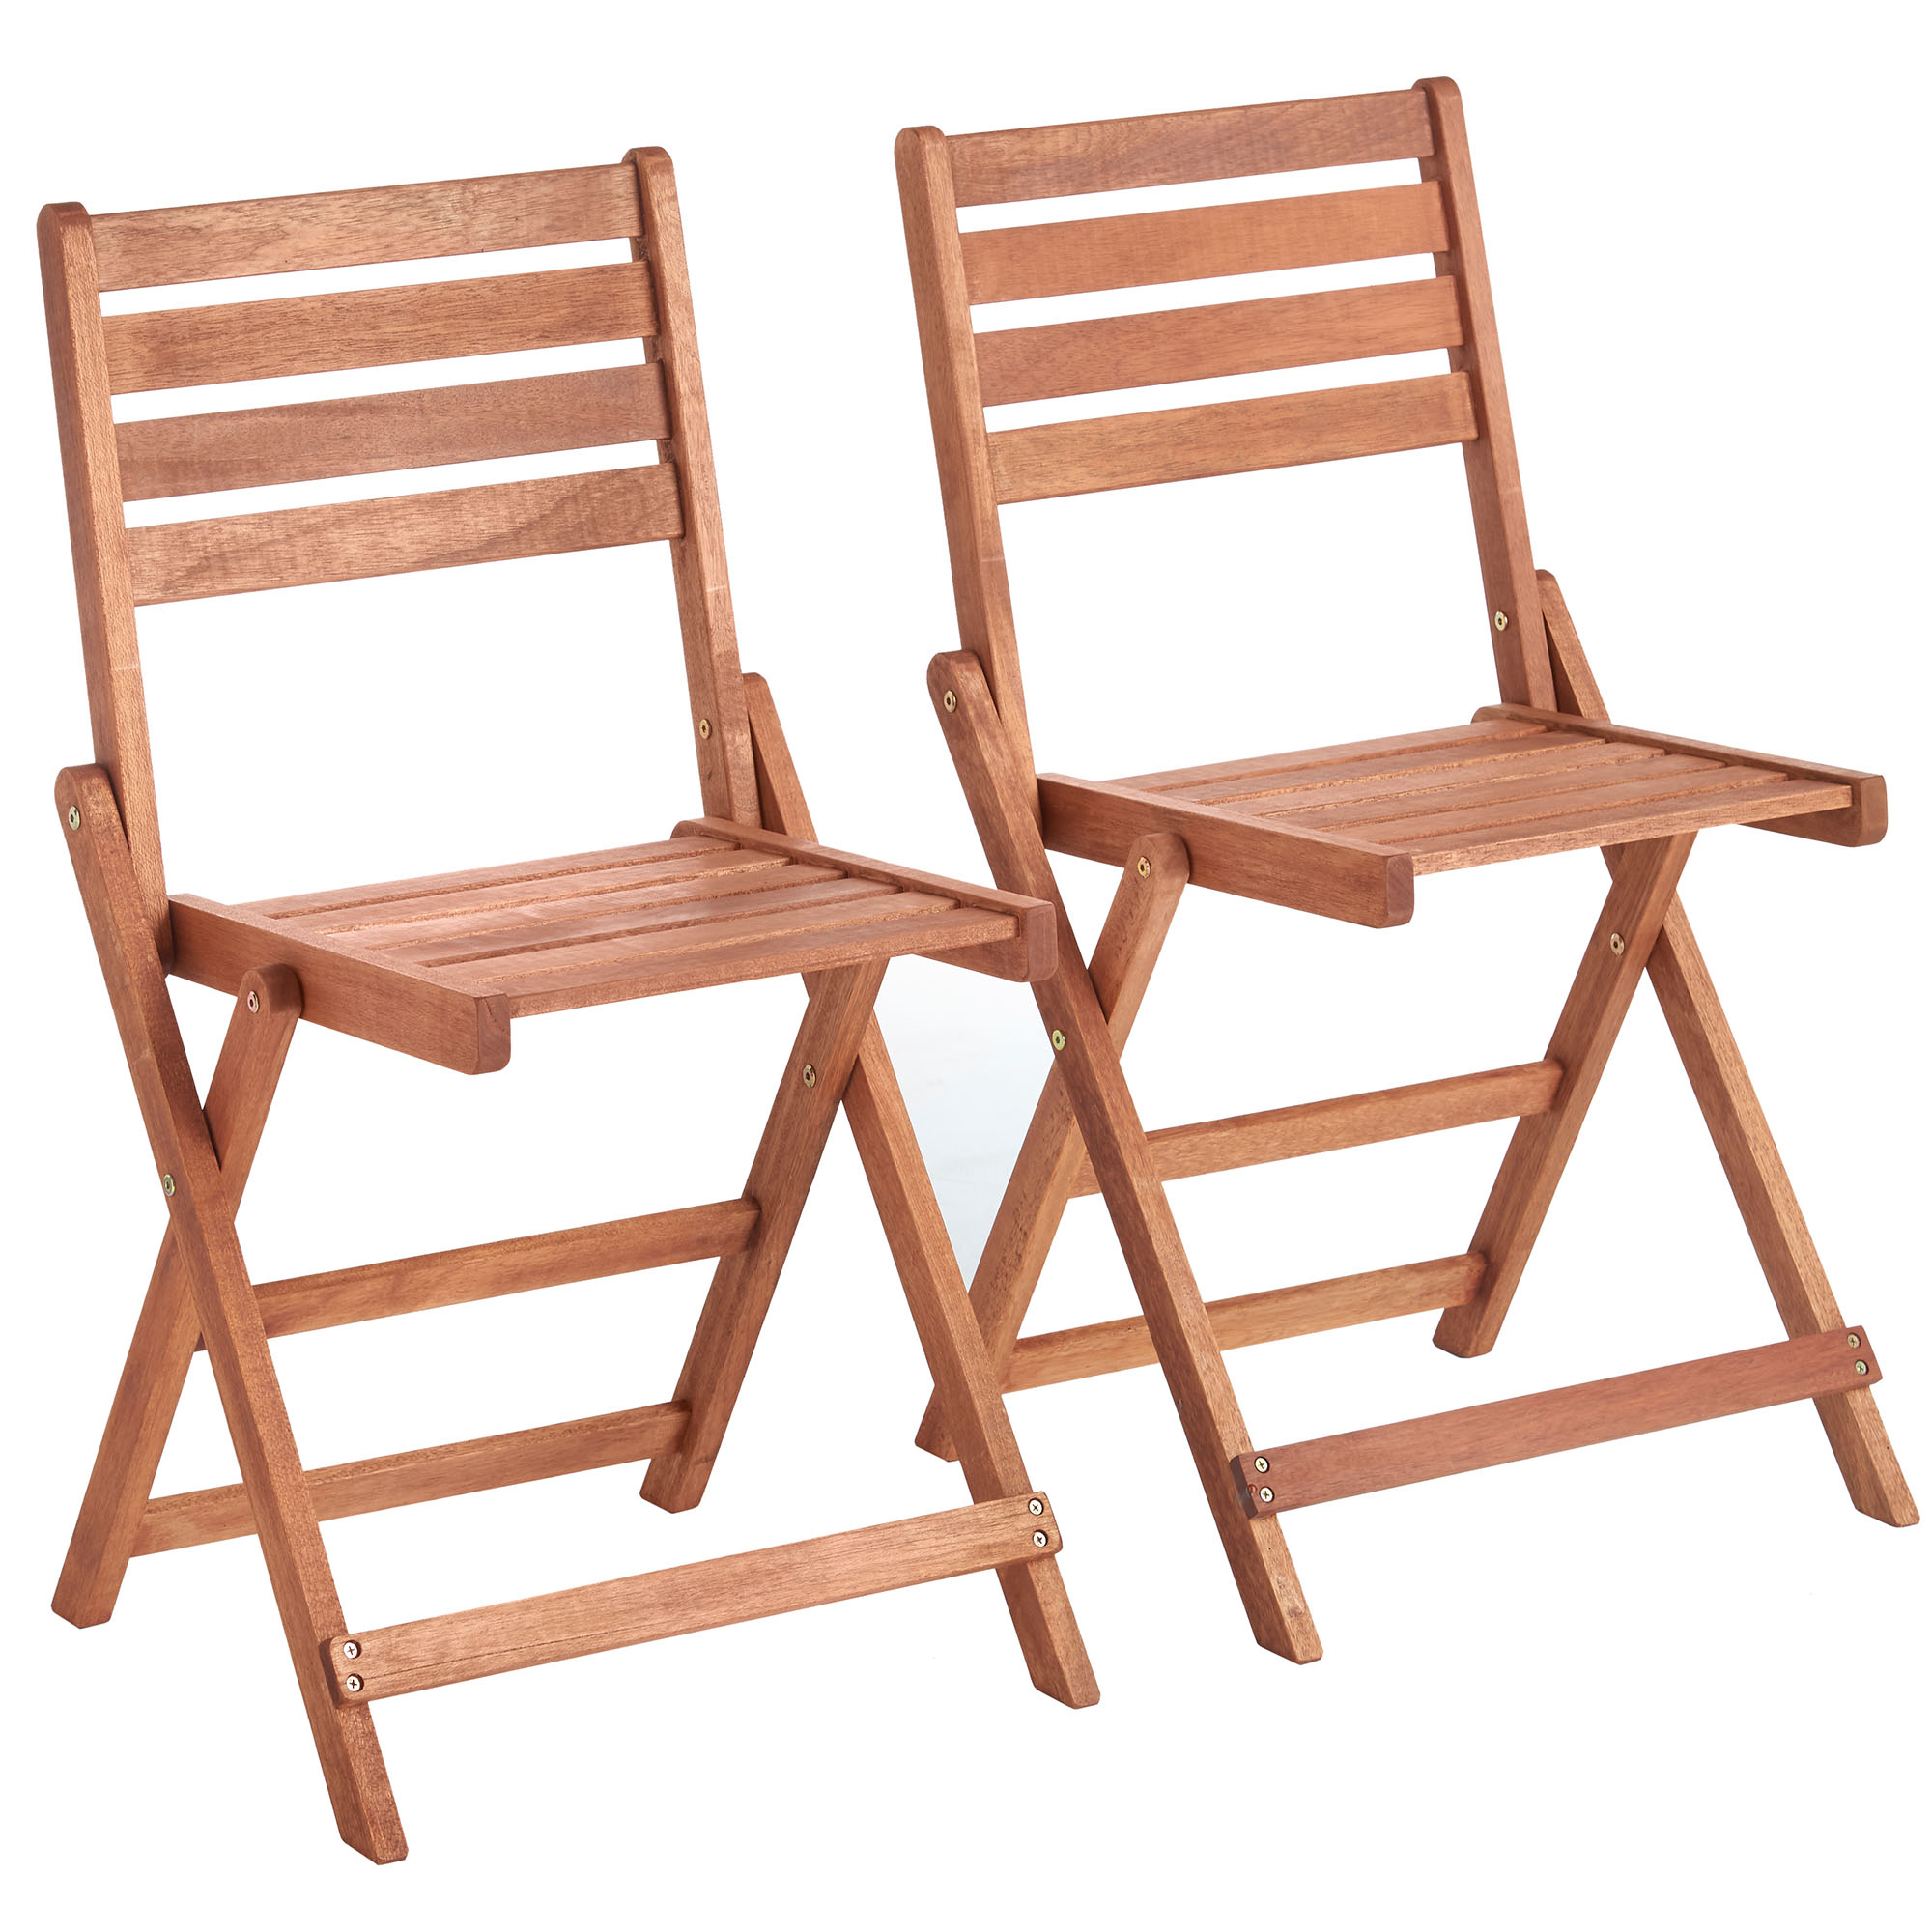 VonHaus Set of 2 Folding Wooden Garden Chairs